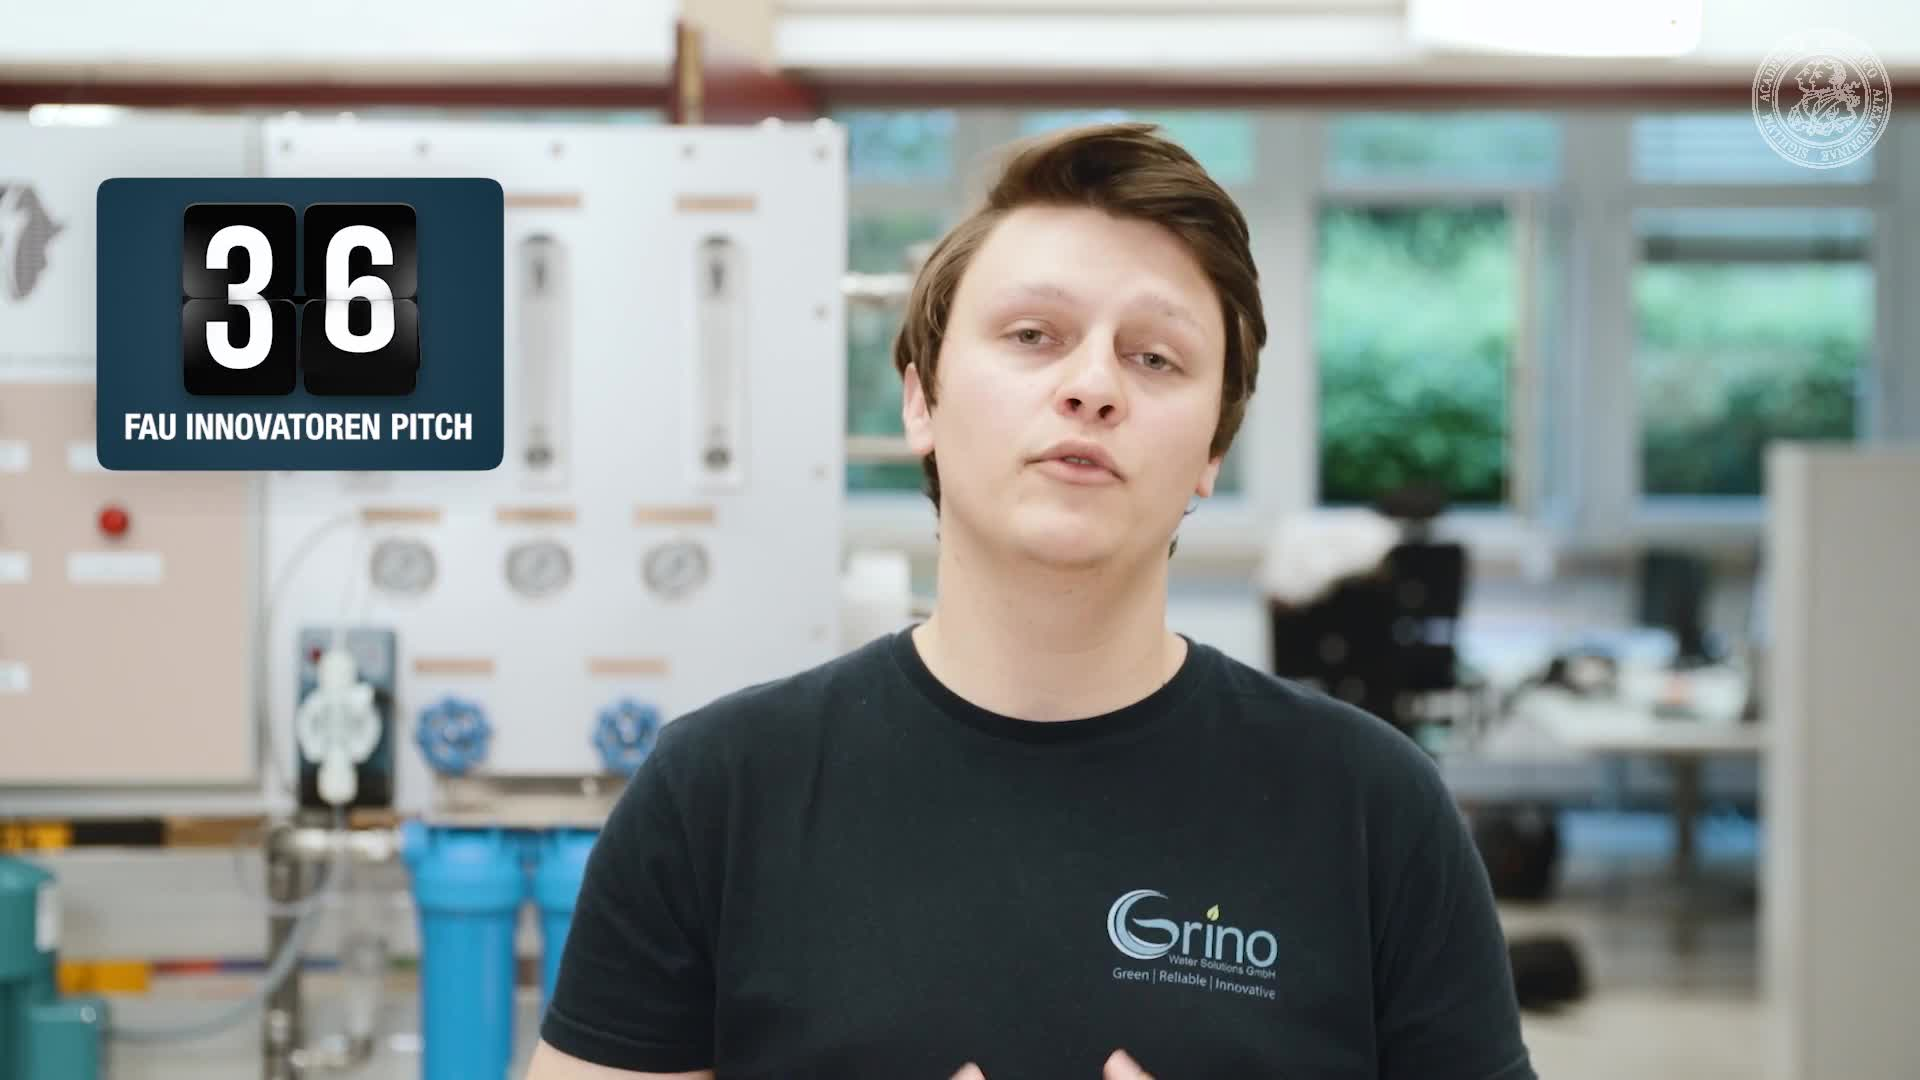 FAU Pitch - Grino Water Solutions preview image